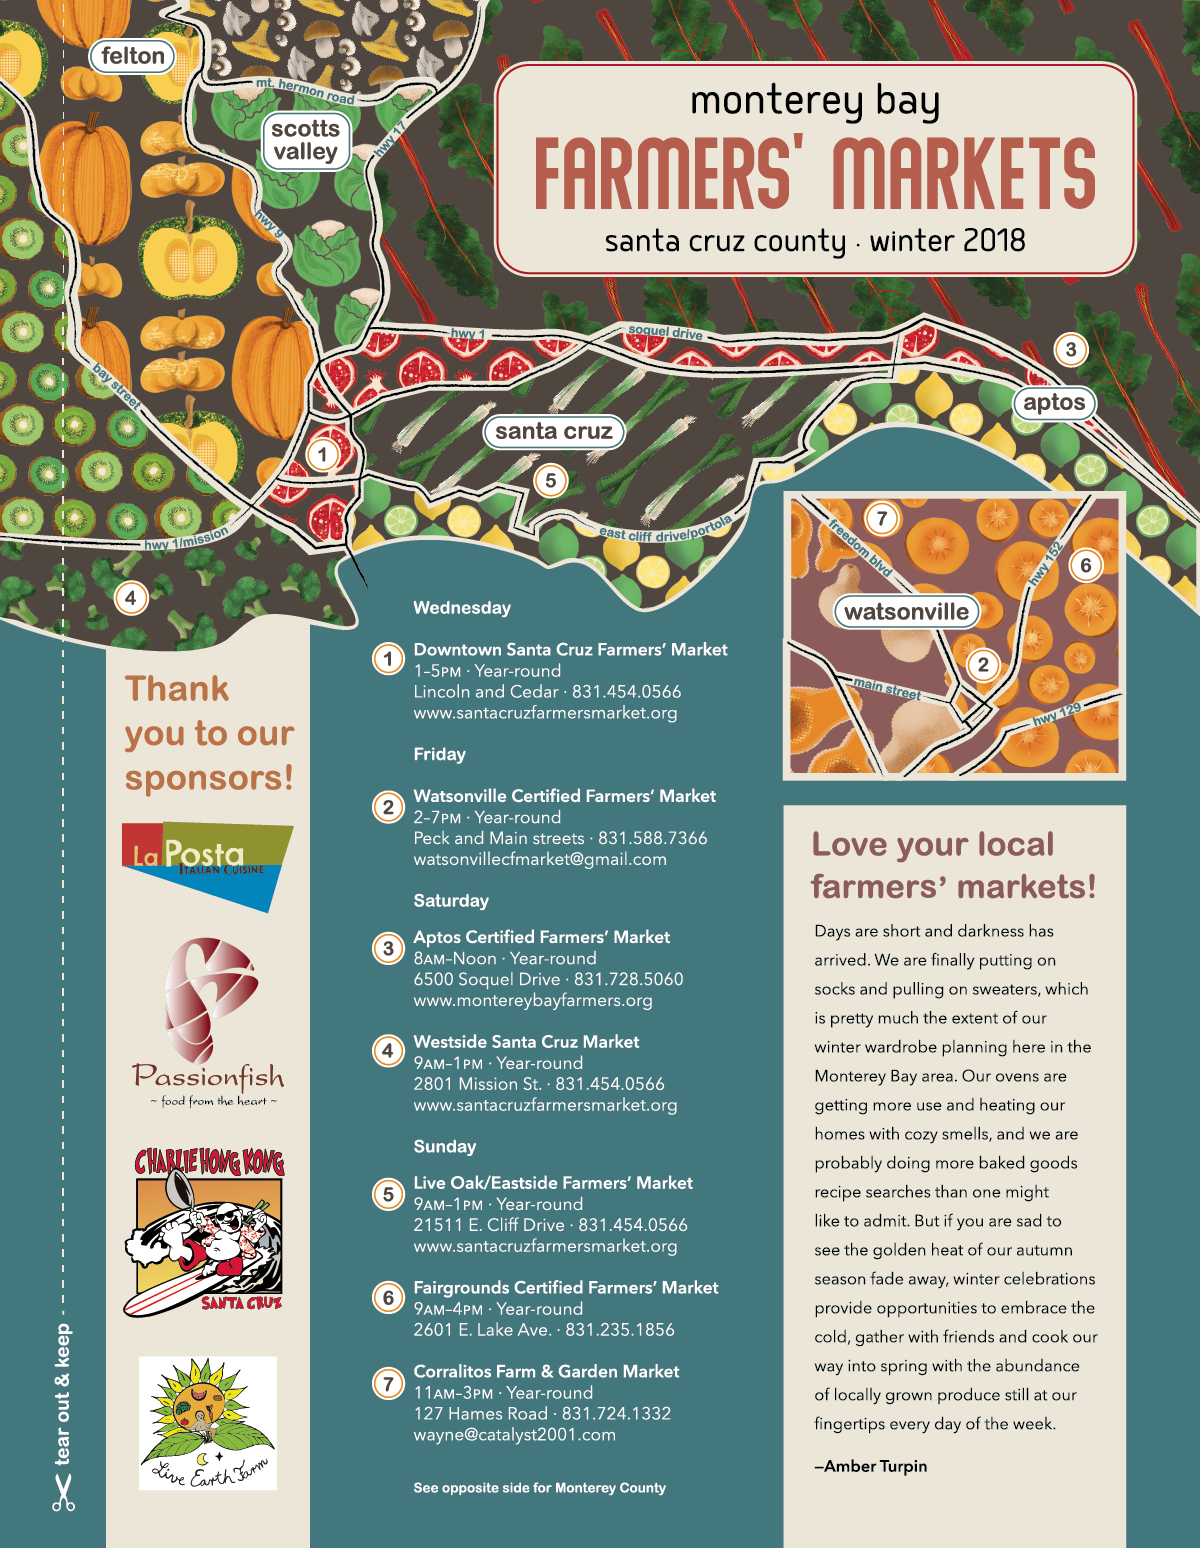 Monterey Bay Farmers Markets (Winter)